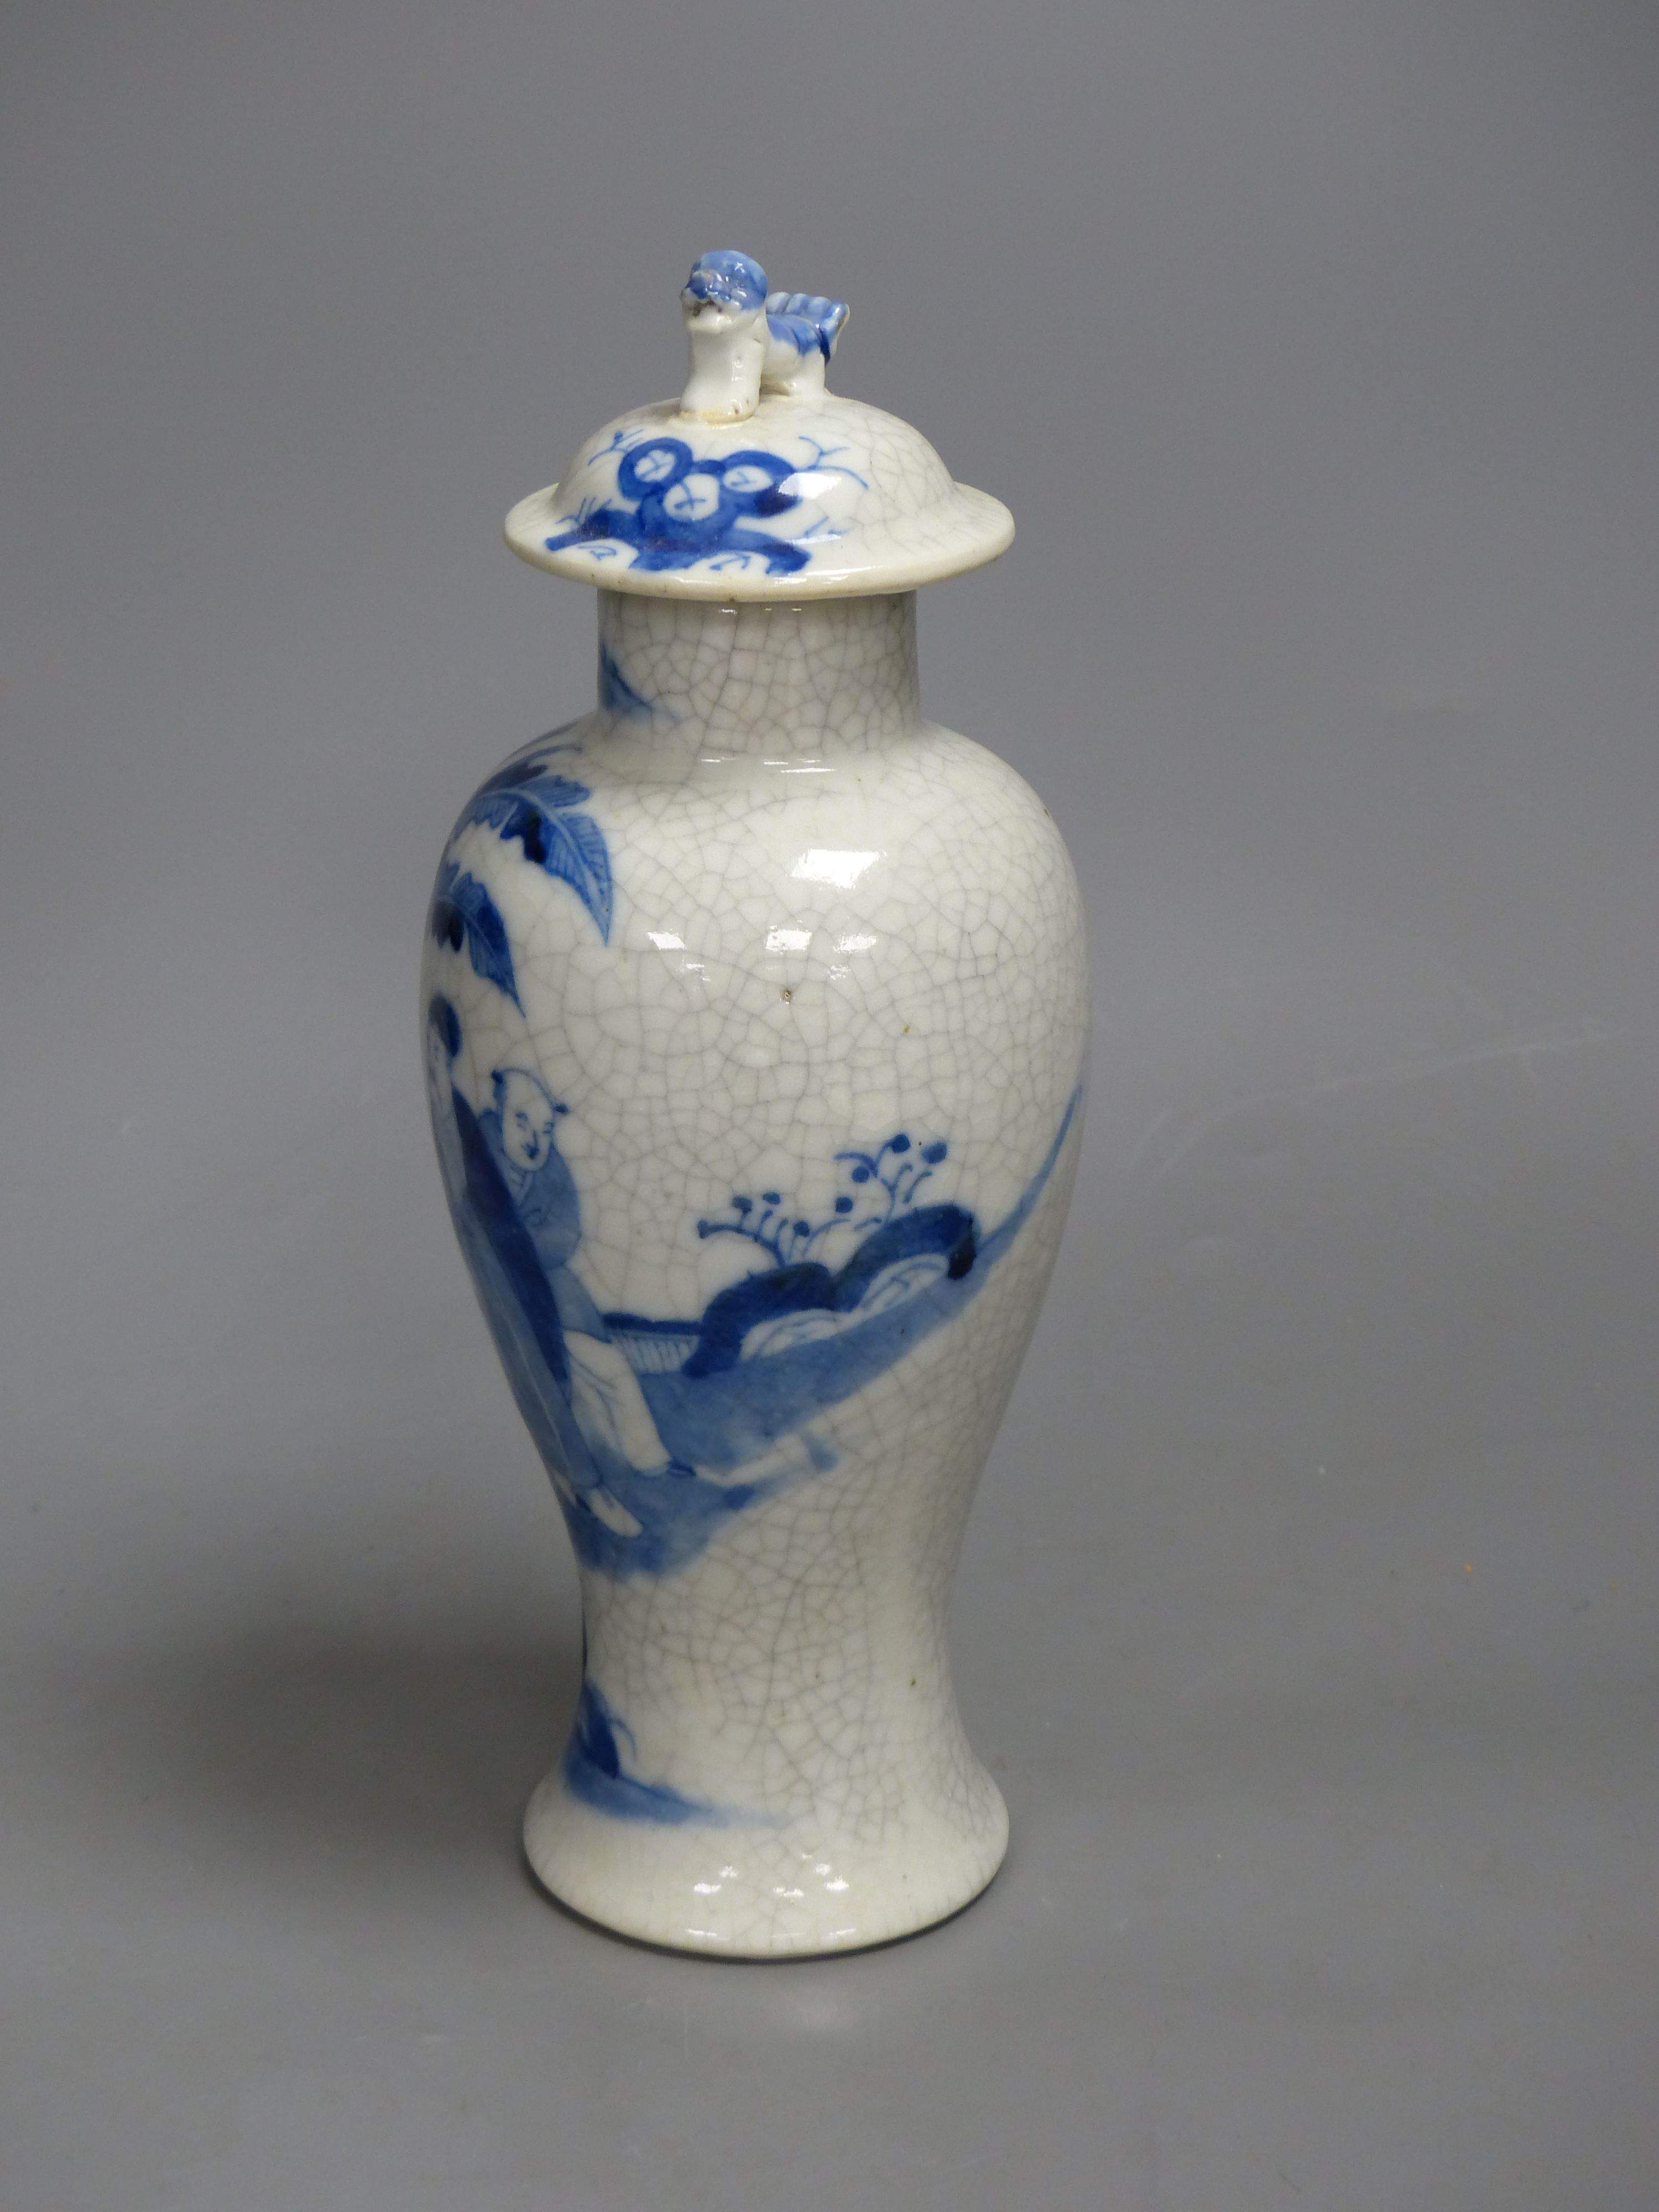 A late 19th century Chinese blue and white crackle glaze vase and cover, height 27cm - Image 2 of 5